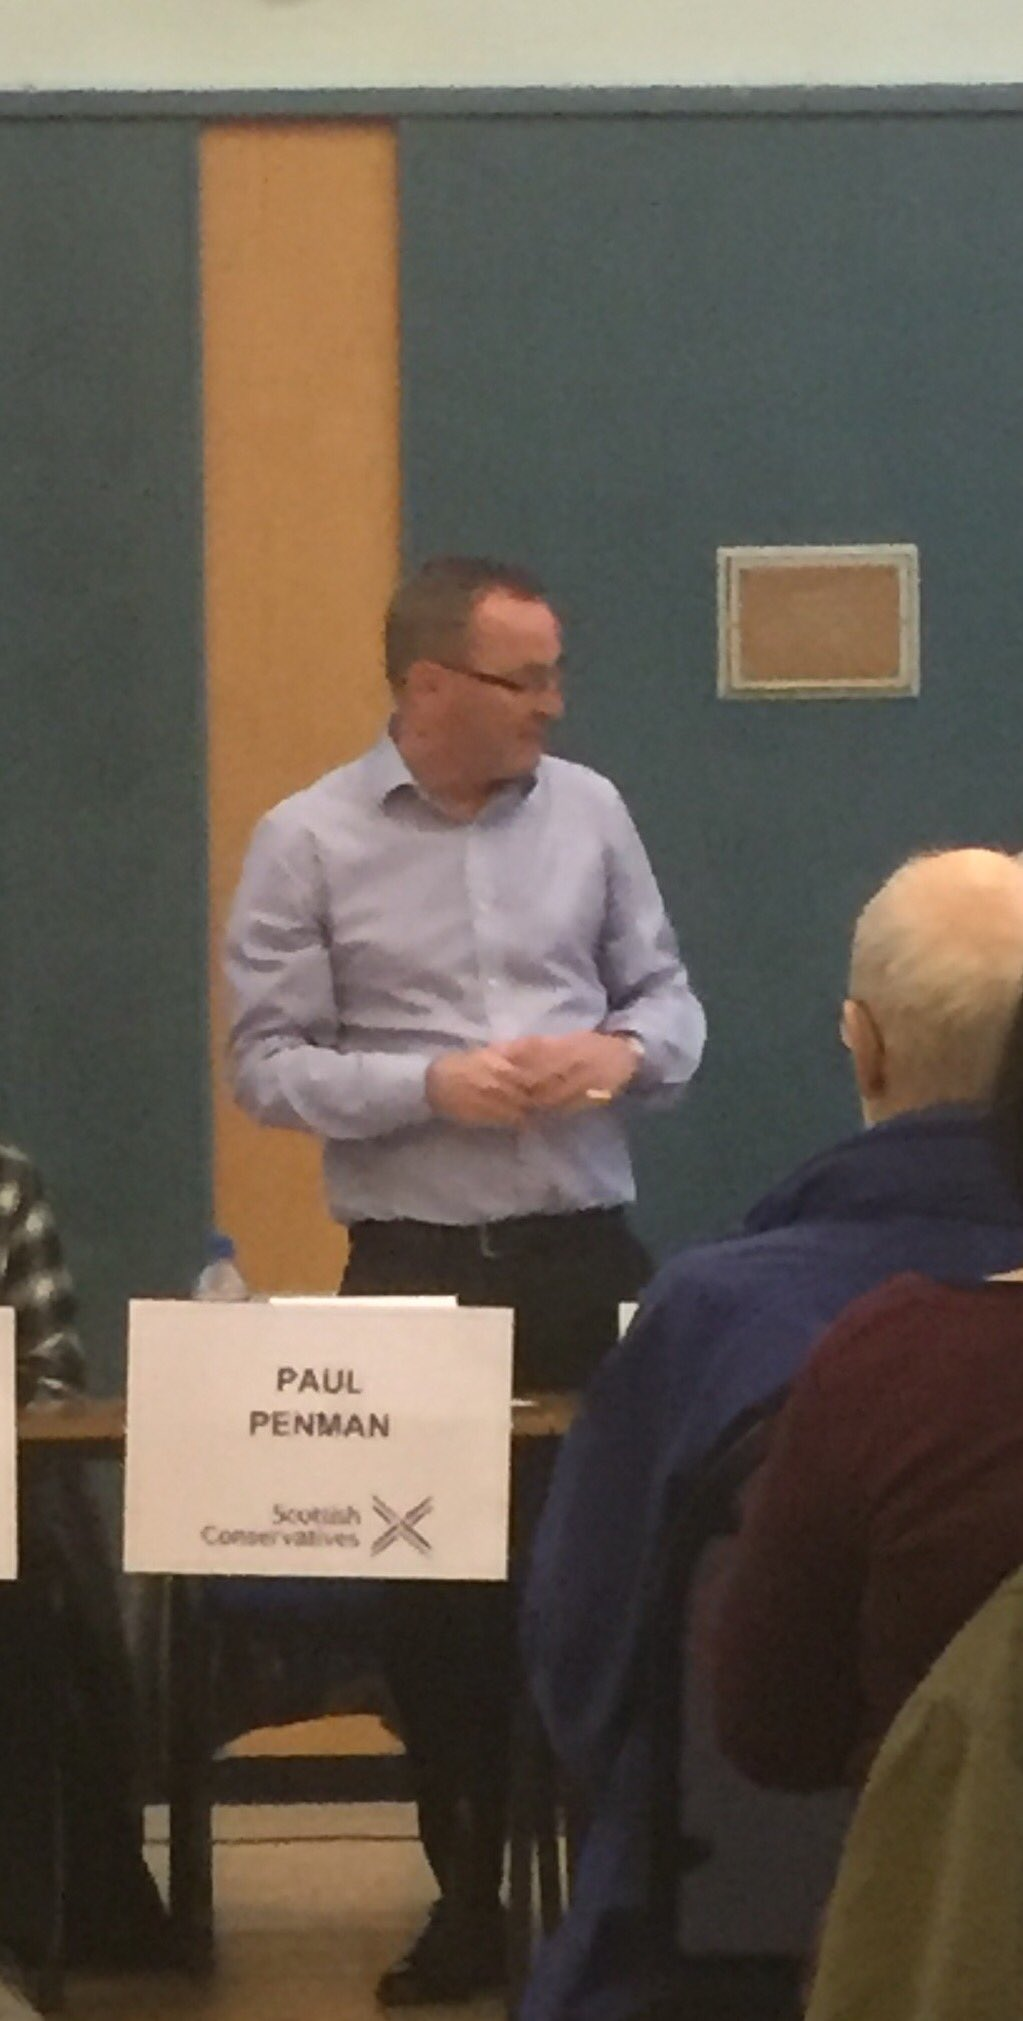 Fourth and final candidate to introduce themself is @Penmanshiel #LeithHustings #Leith https://t.co/6gbLnL04K3